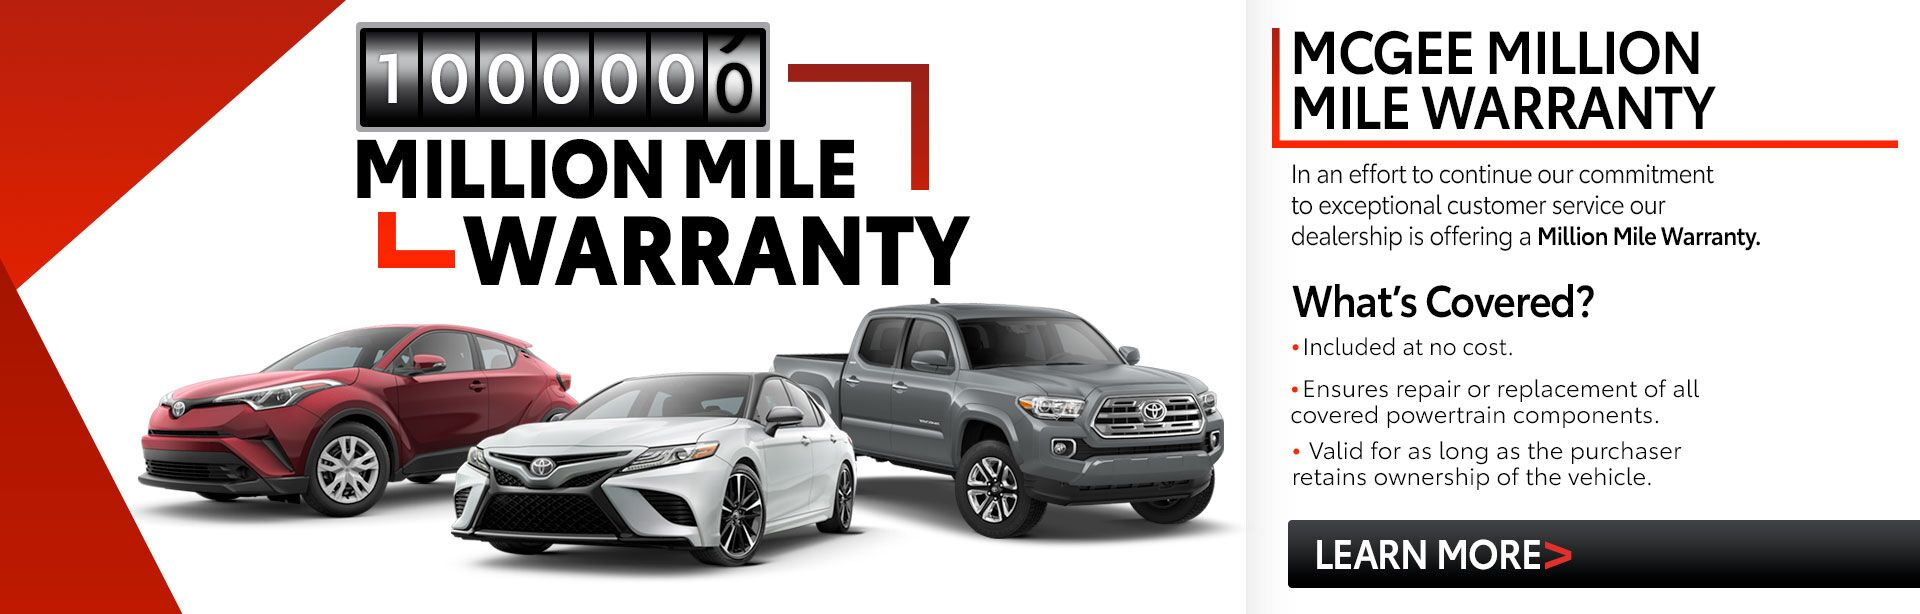 McGee Million Mile Warranty